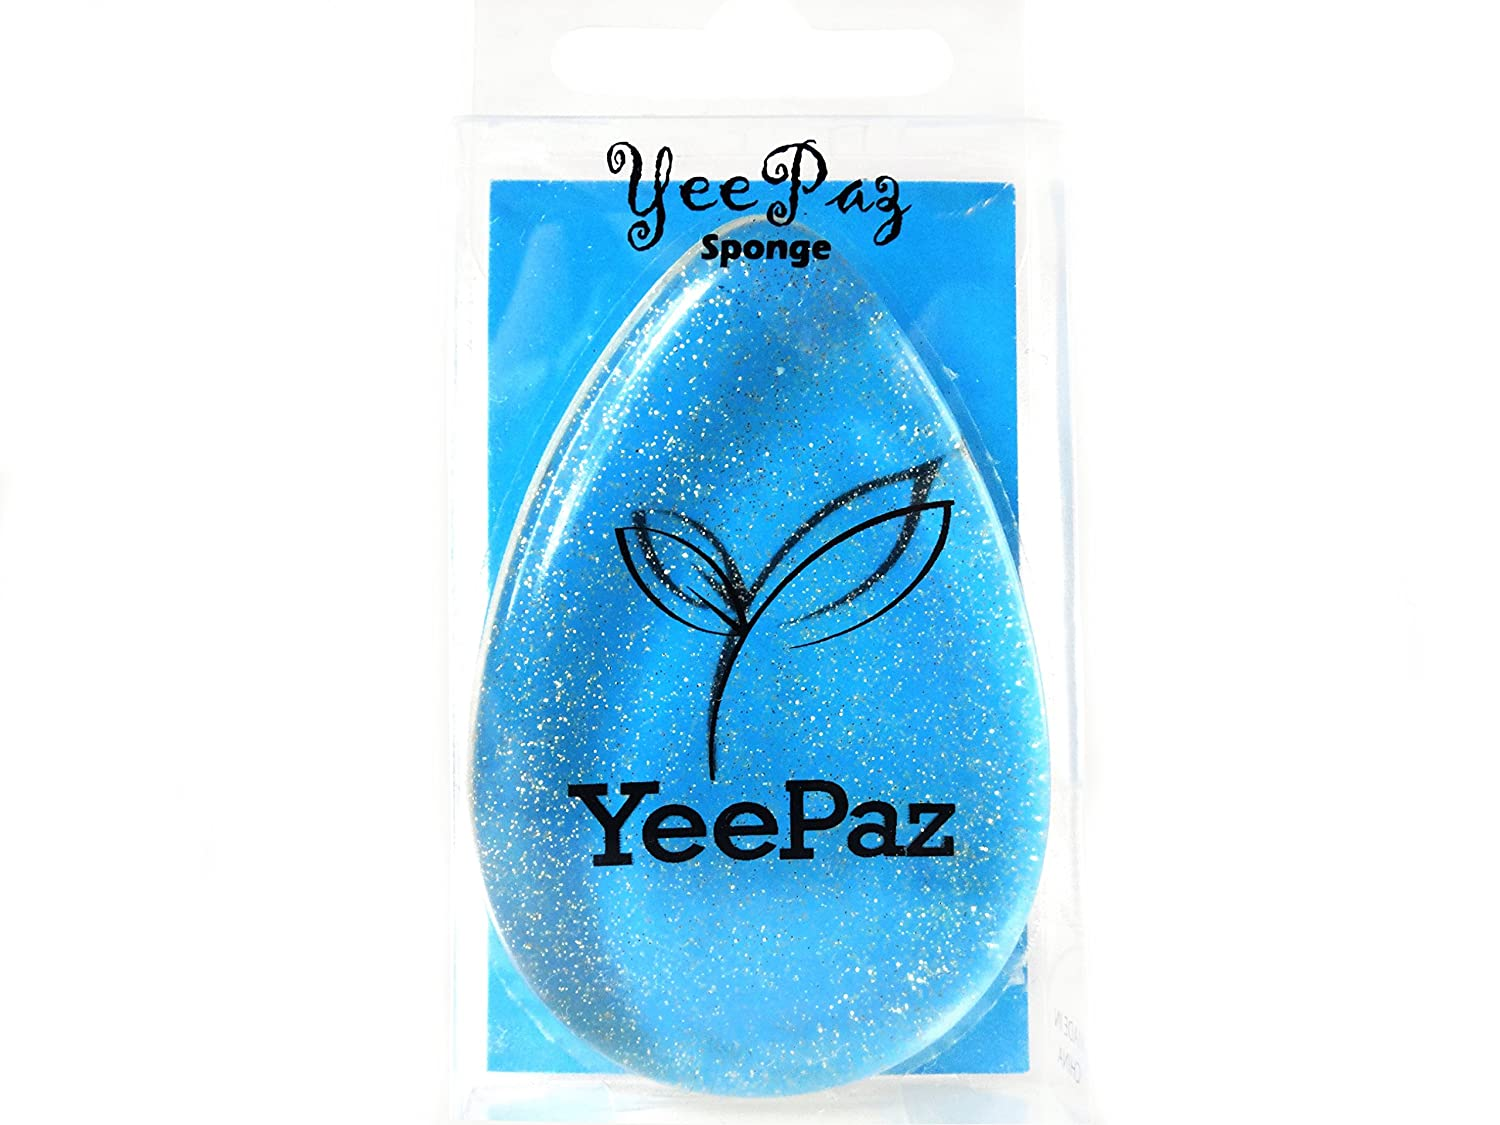 Silicone Makeup Sponge by YeePaz - Washable, Reusable, Multi-Use Makeup Applicator - Sparkling Tear Shape for Quick and Precise Application of Foundation / Blusher / Base / BB Cream / Flawless